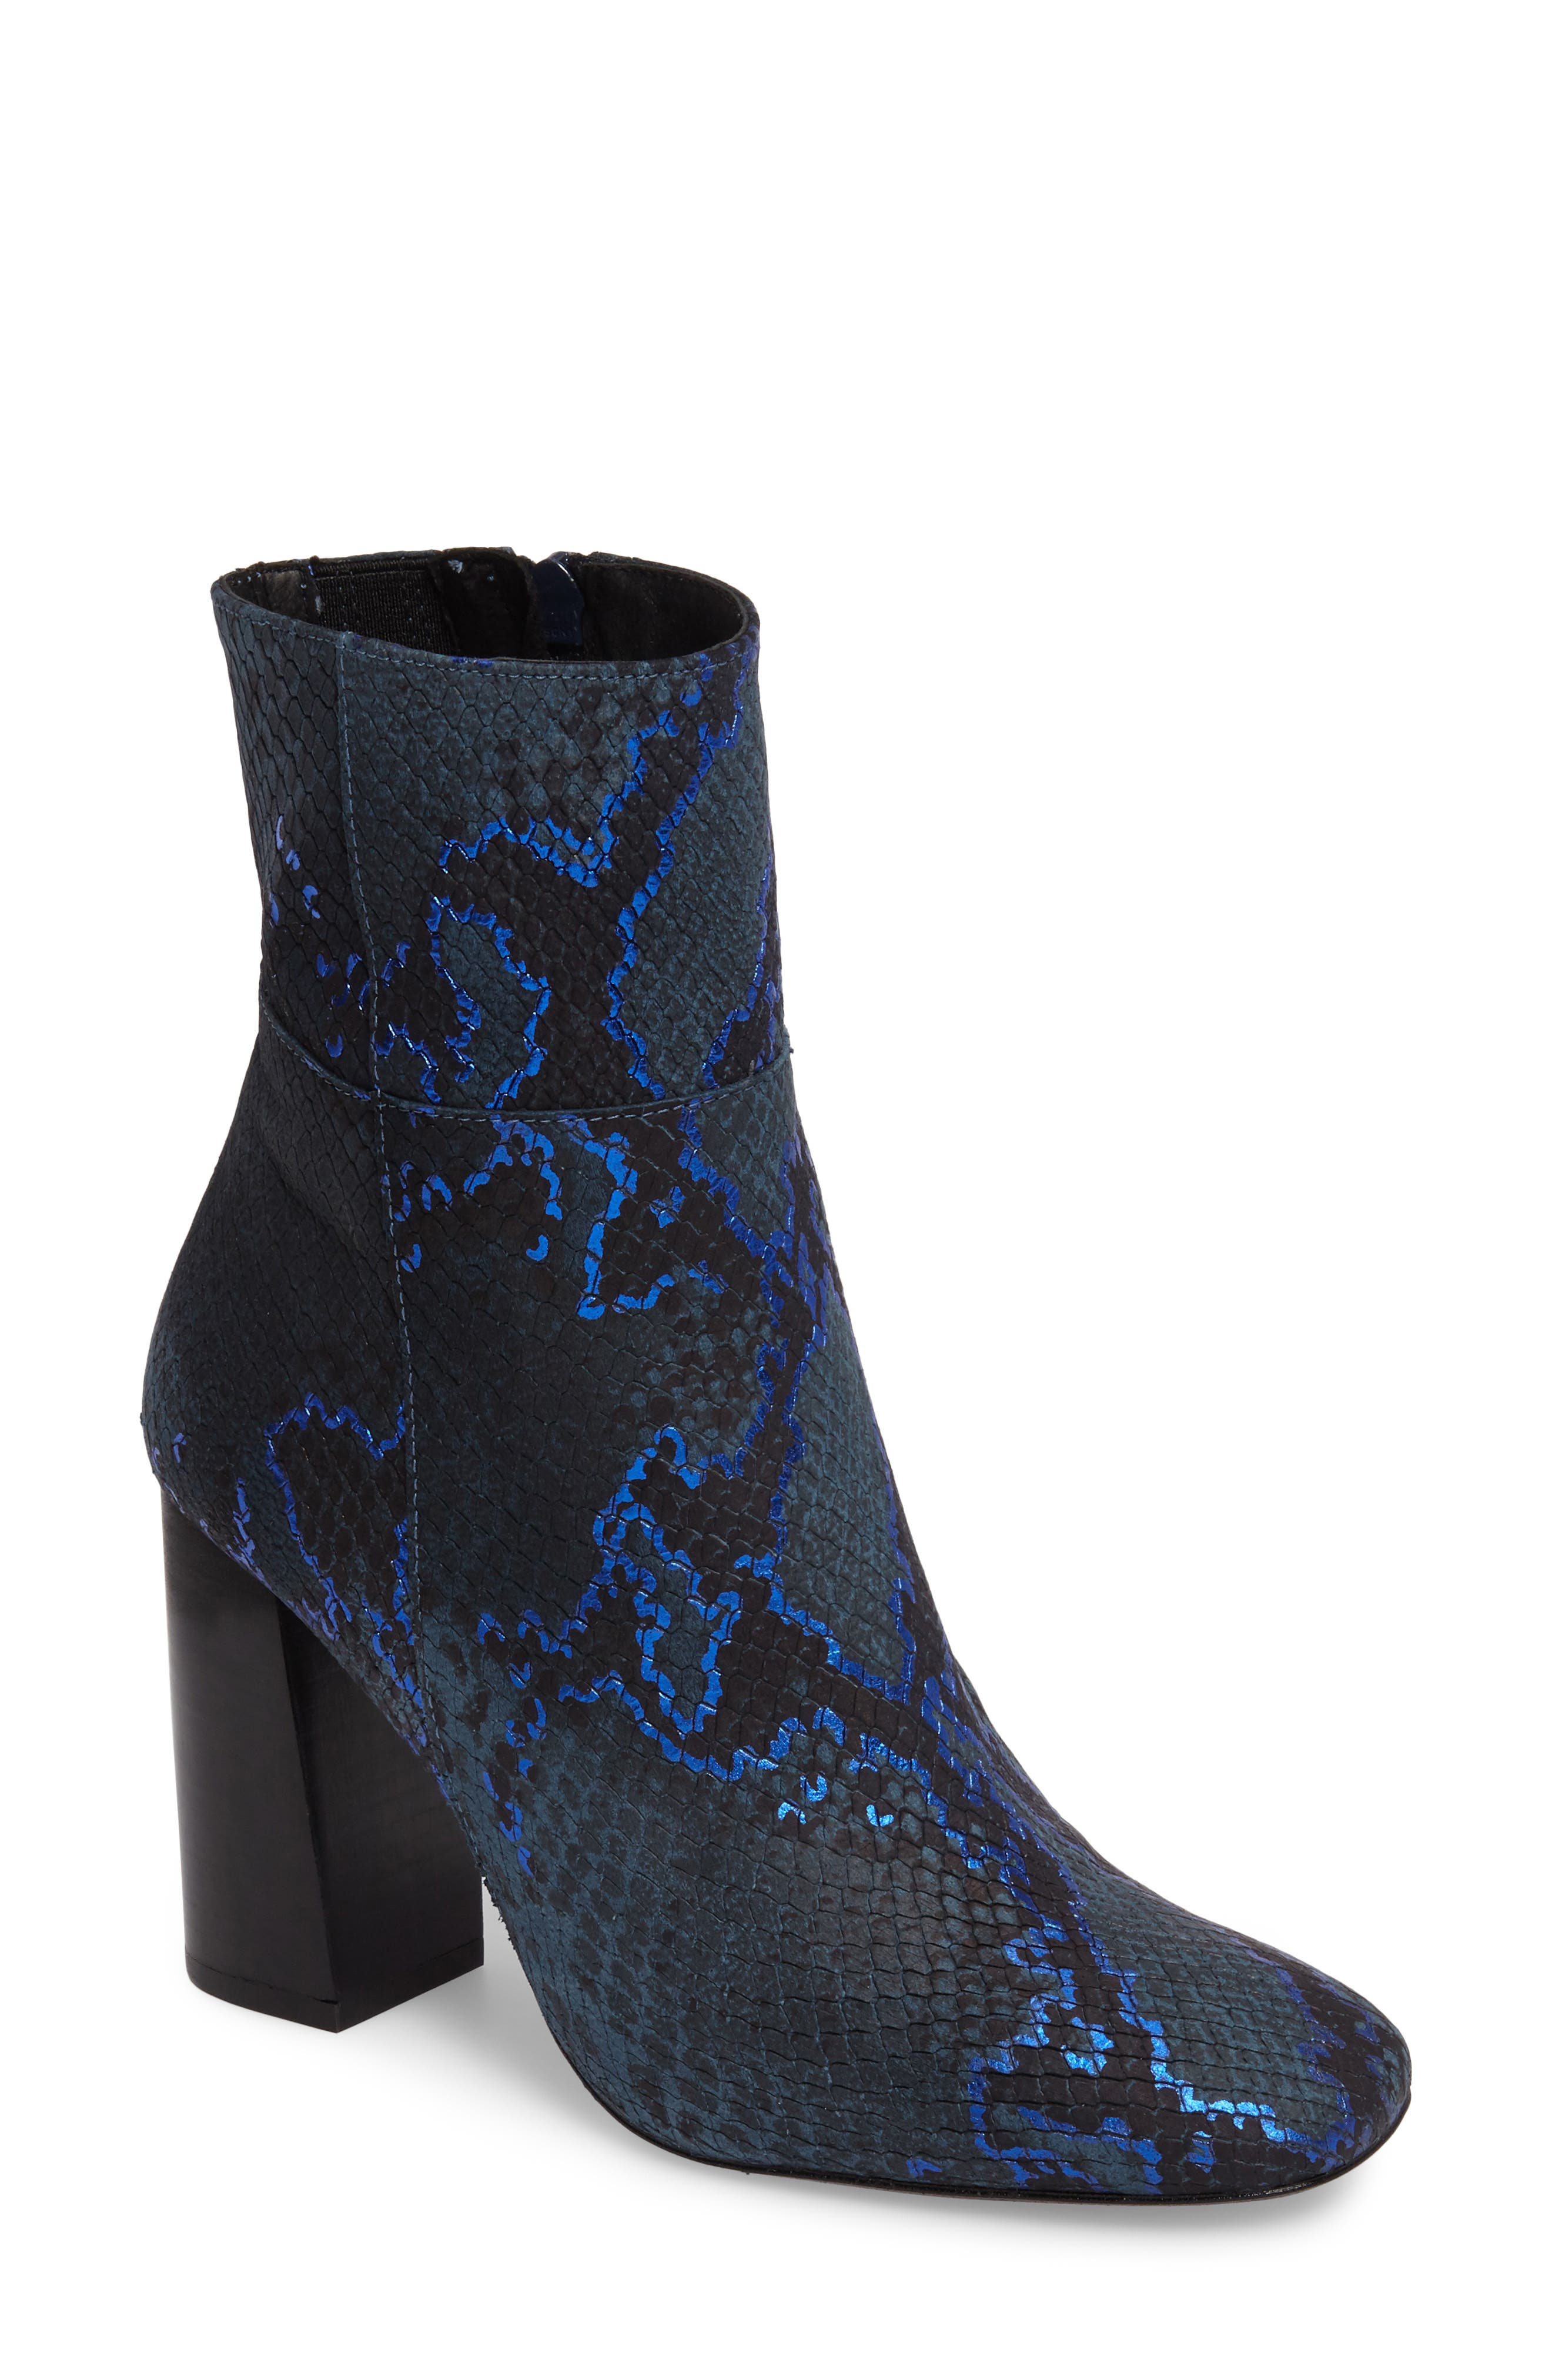 Free People Nolita Block Heel Bootie (Women)